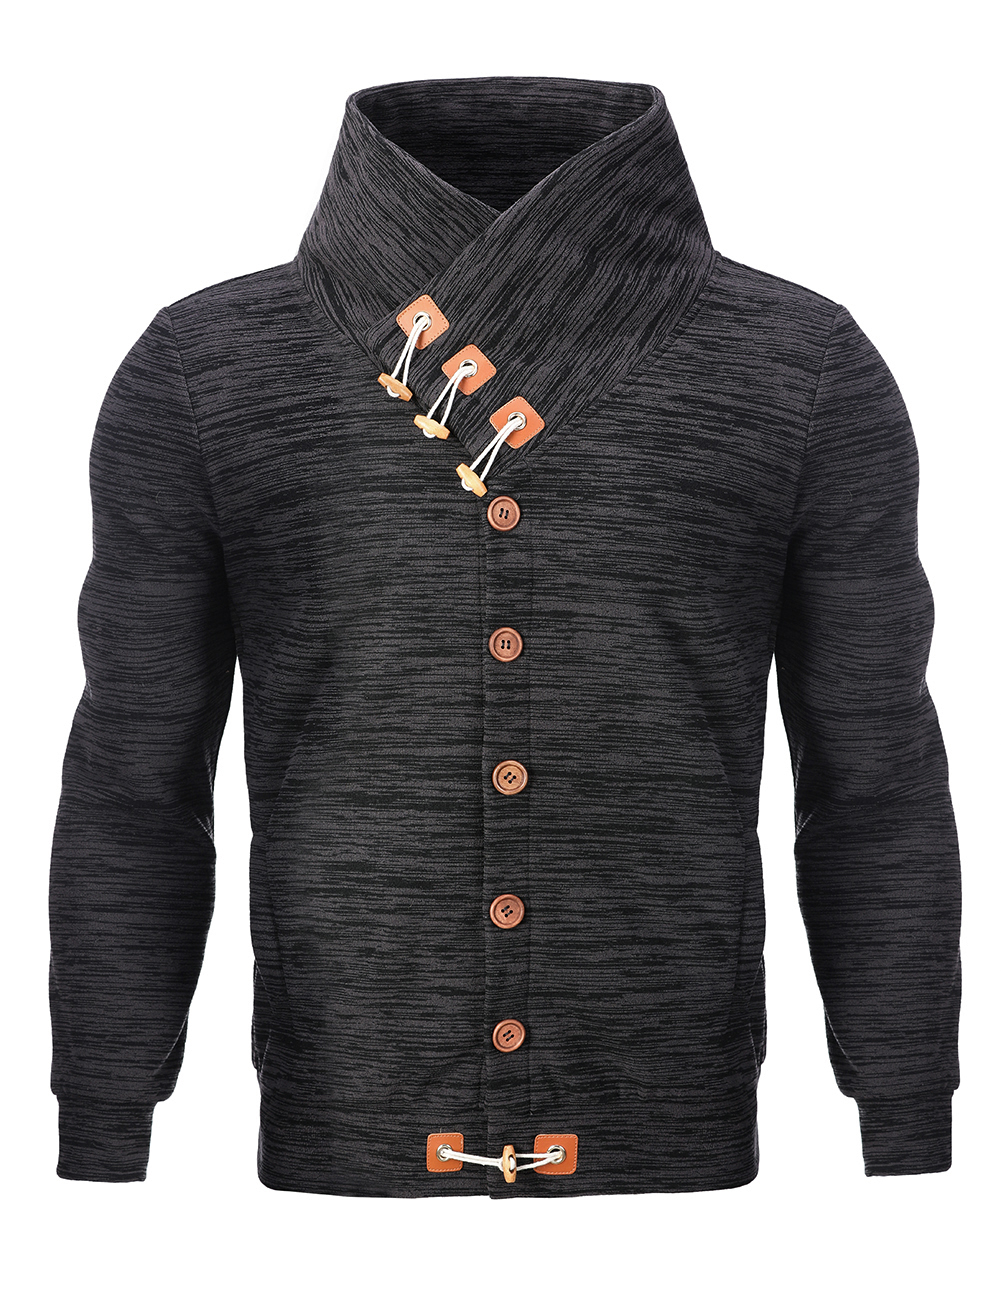 Sweaters Supplies Jacket Trendy Design Original Mens New Goods Newest Fleece Knitted Style